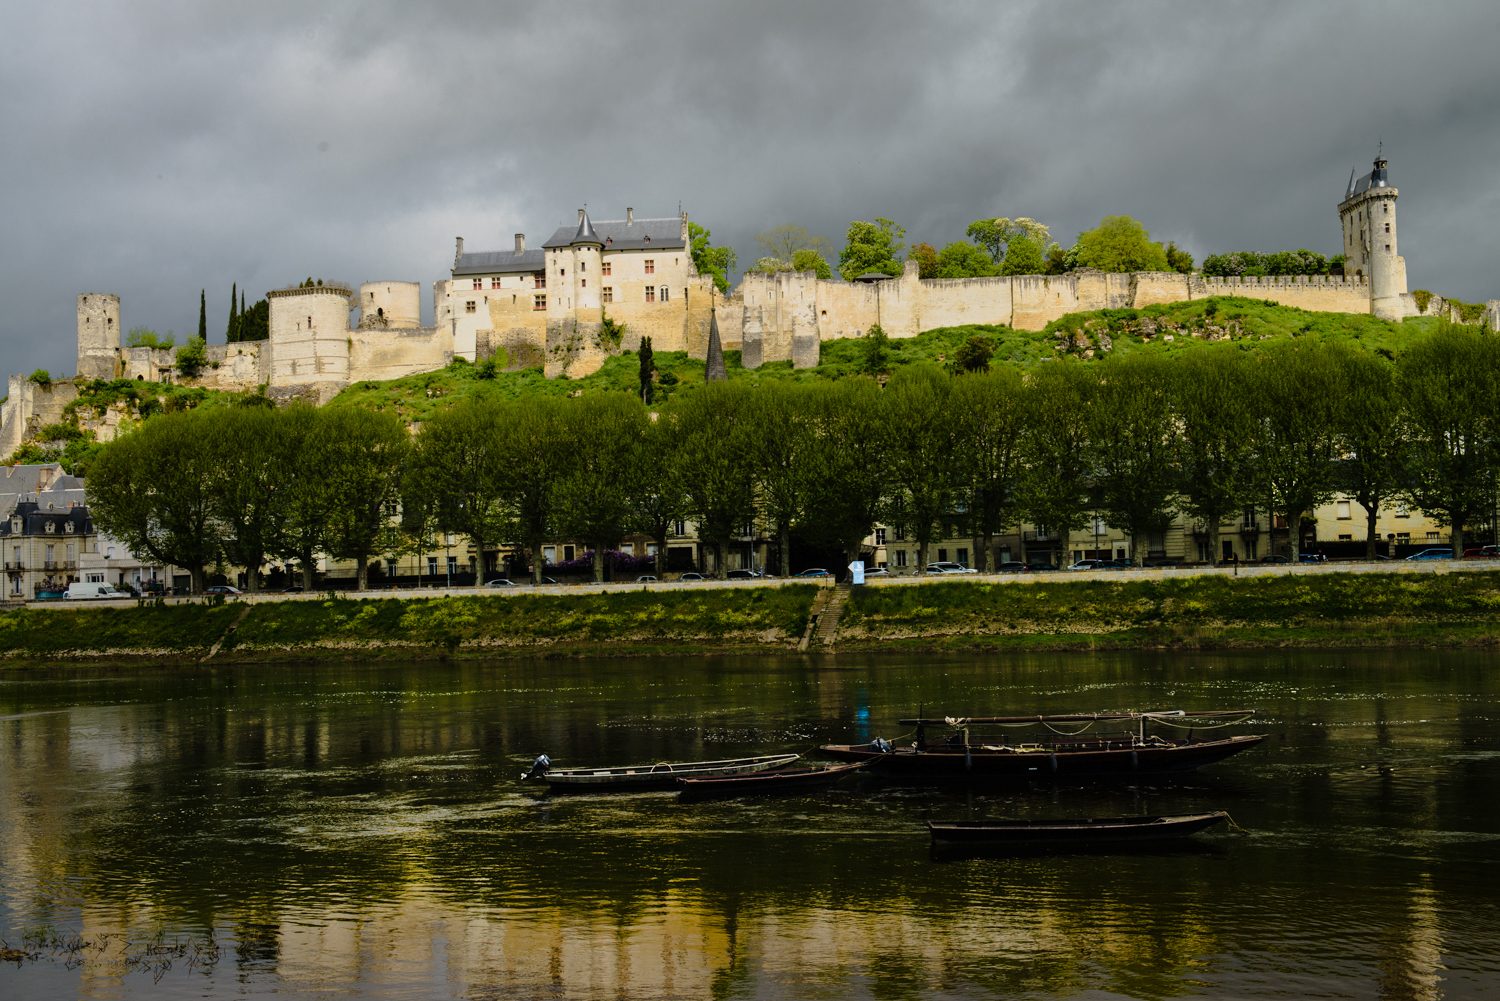 Forteresse Royale de Chinon, Loire Valley  PHOTOGRAPHY: William Lounsbury • NIKON D800 • AF-S NIKKOR 24-70MM F/2.8G ED @ 45MM • Ƒ/8 • 1/640 • ISO 200